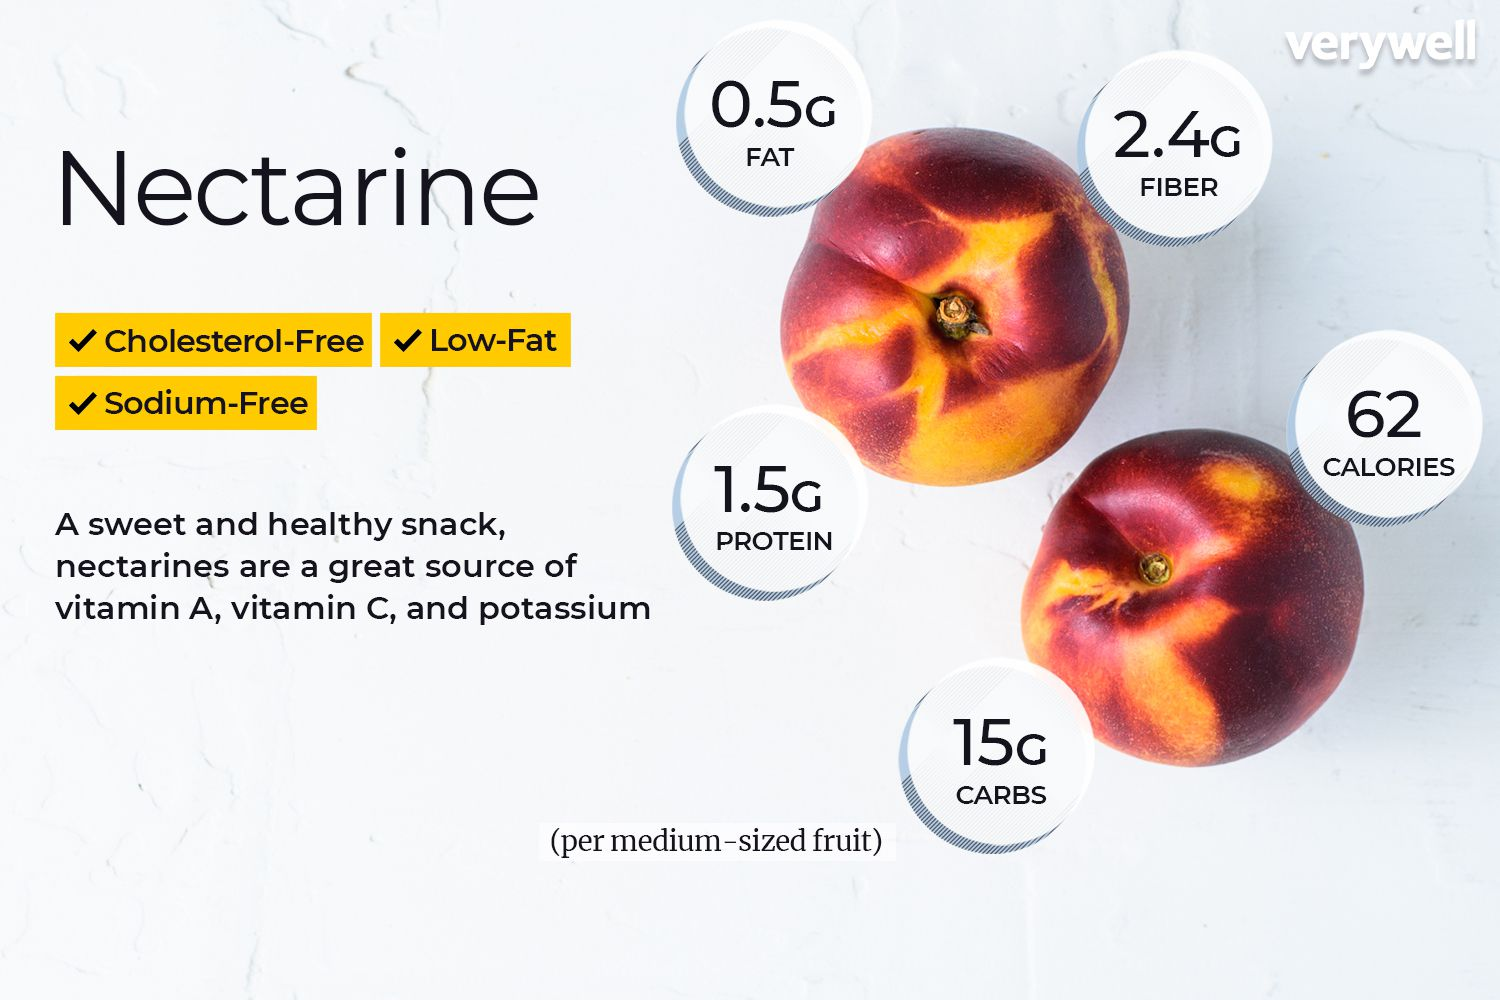 nectarine nutrition: calories, carbs, and health benefits